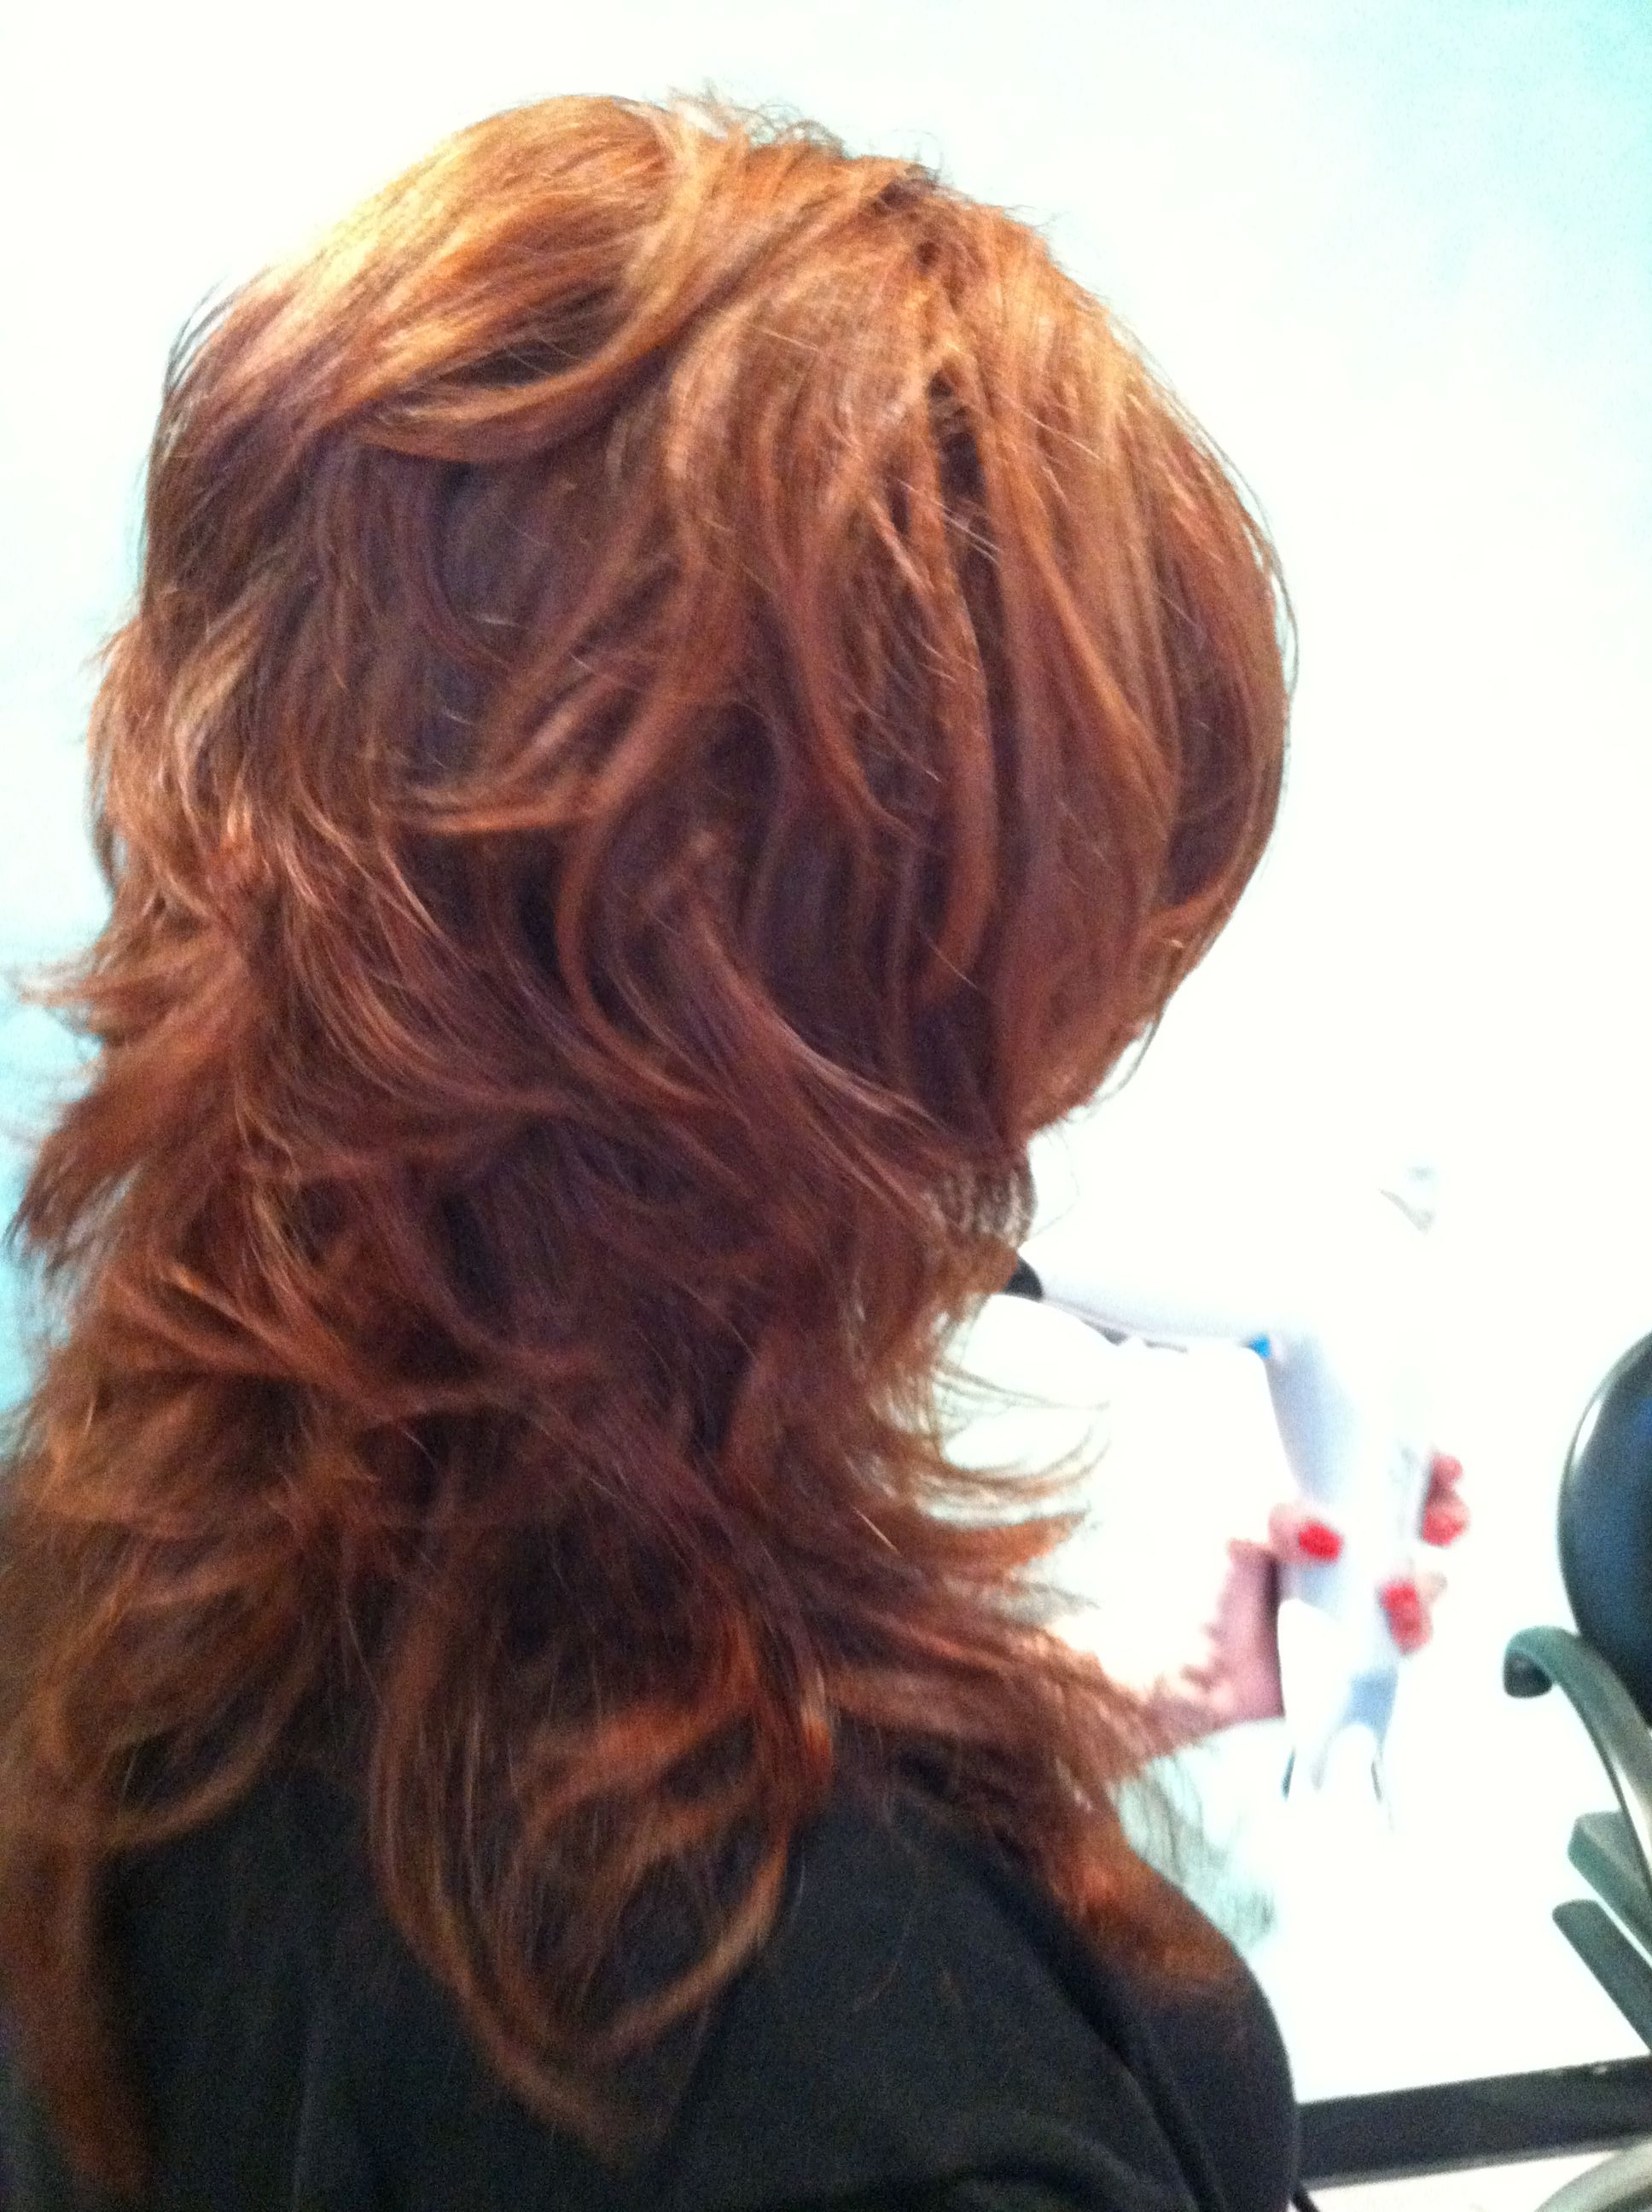 Pin On Hair By Kelly O Connor